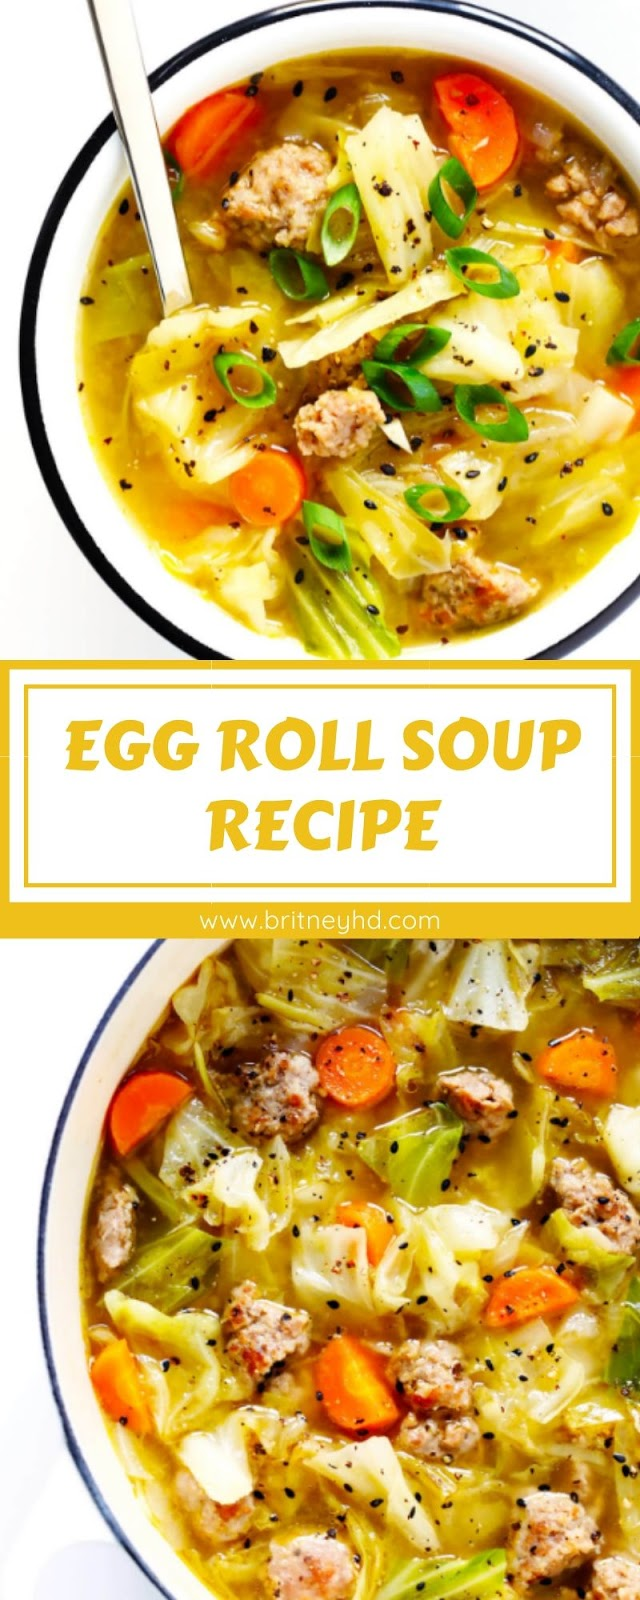 EGG ROLL SOUP RECIPE